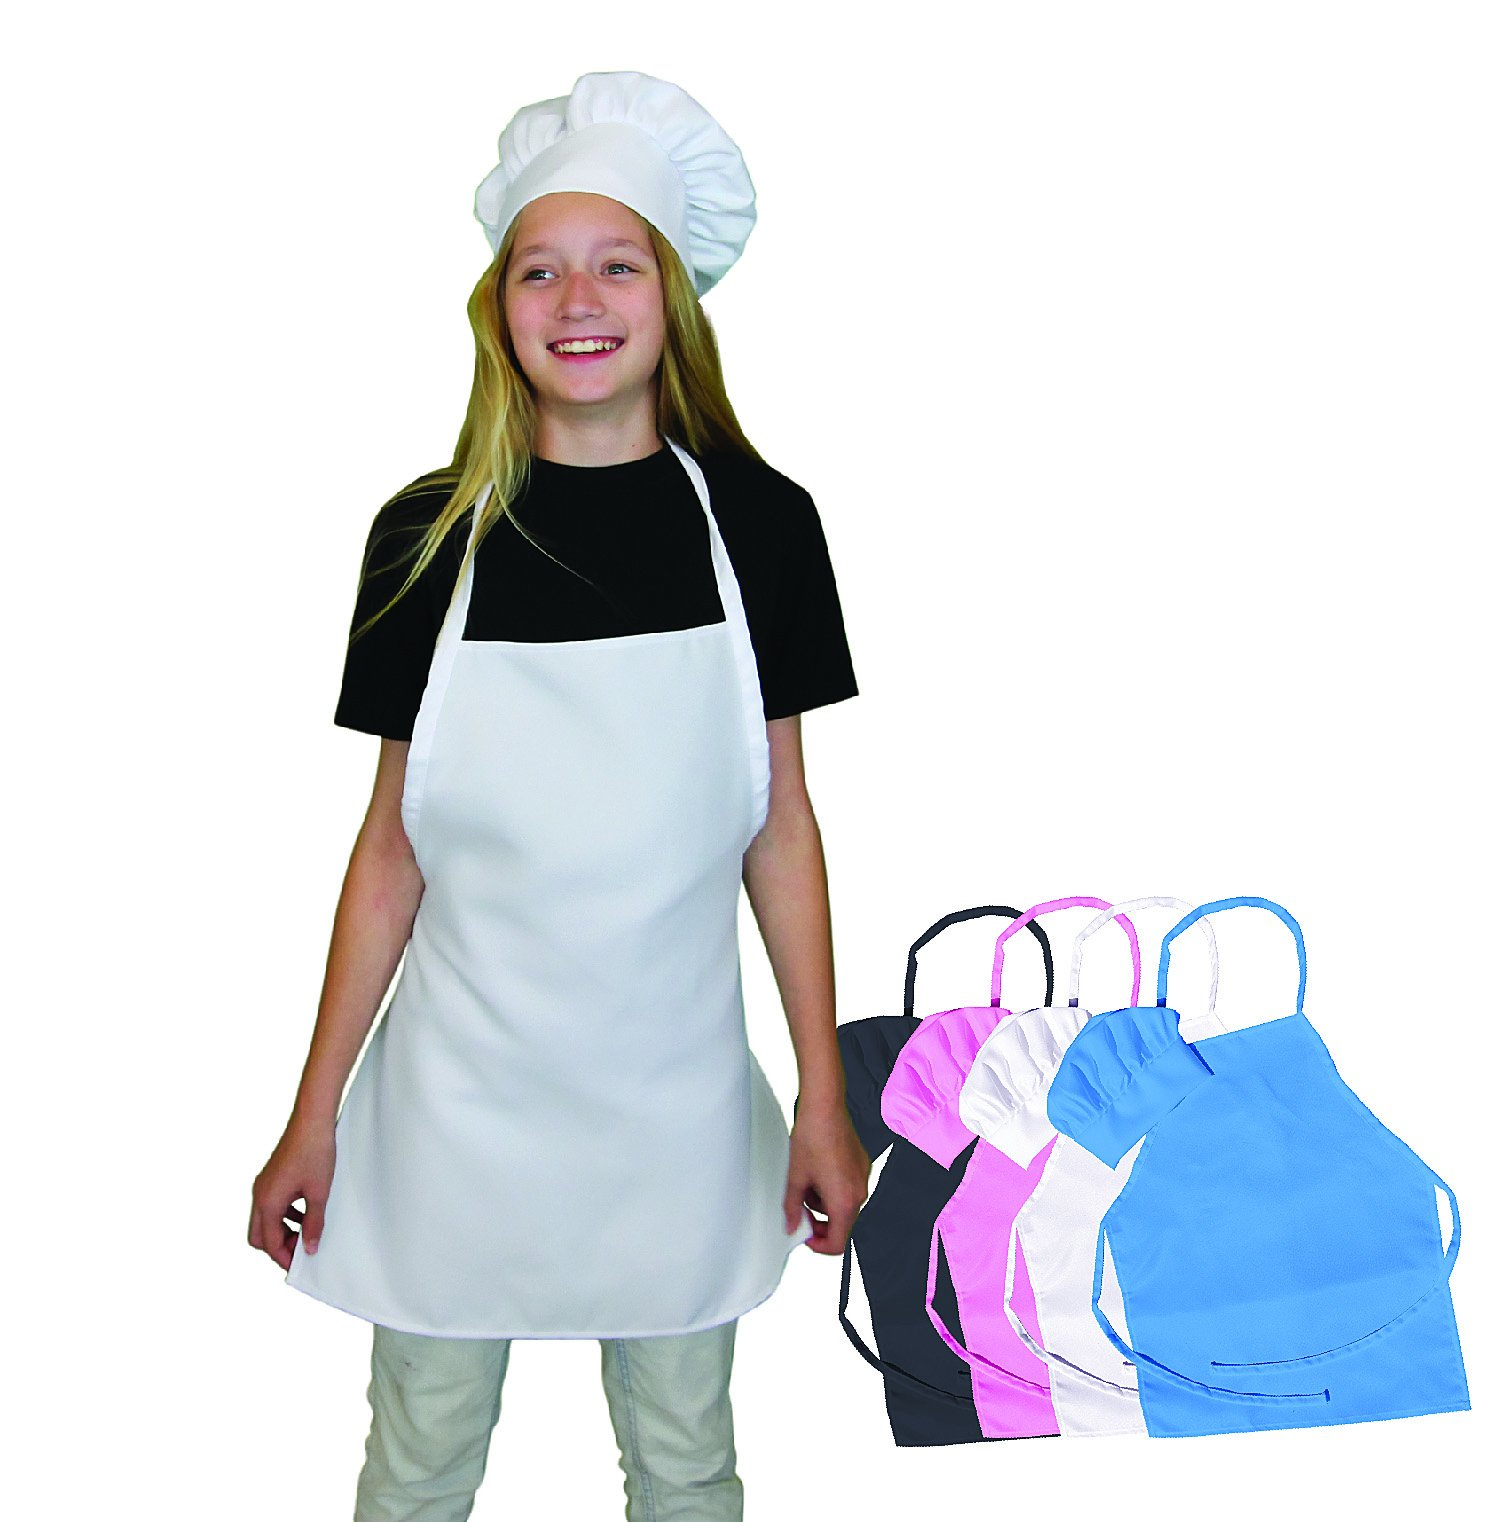 Kids Apron and Chef Hat Set - Adjustable Hat. Fits Childs Size Medium 6-12. (White) Free eBook